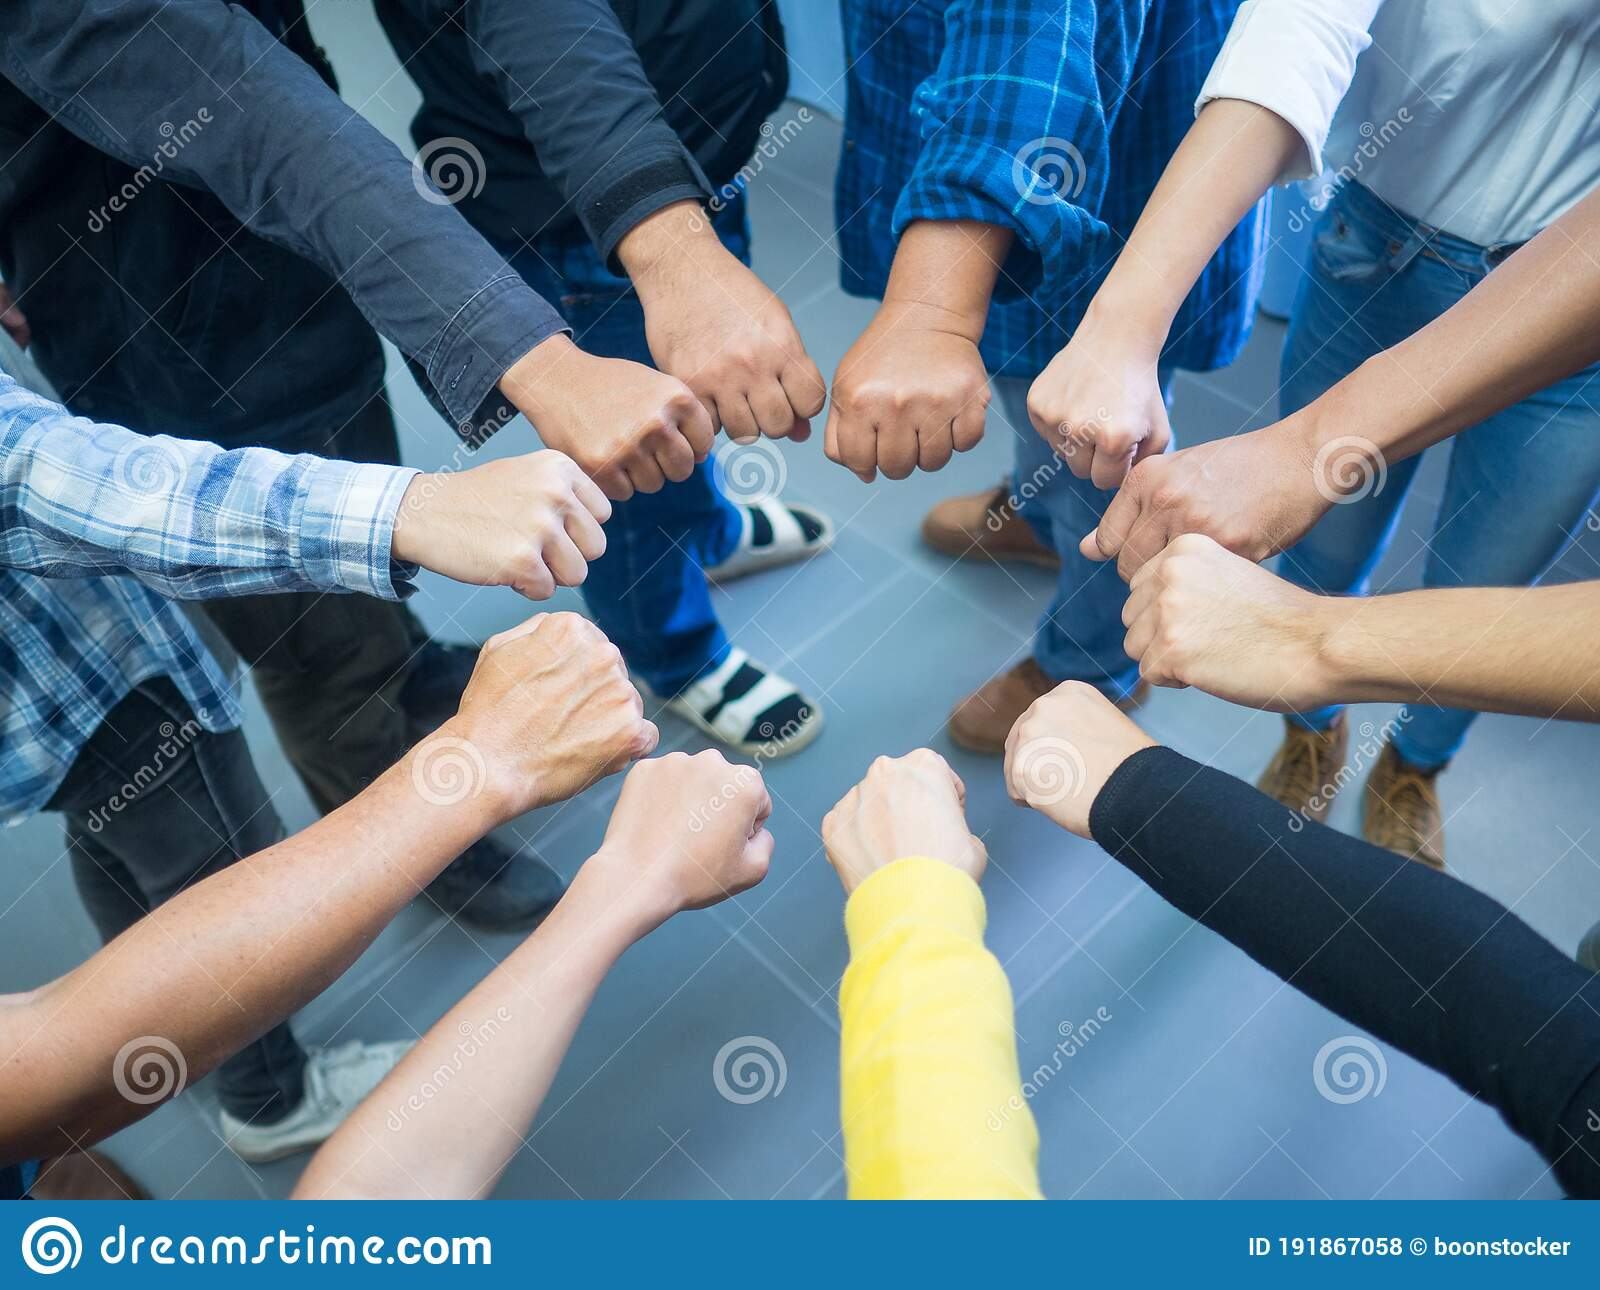 Many People Putting Their Fists Together As Symbol Of Unity Stock Photo Image Of Cooperation Human 191867058